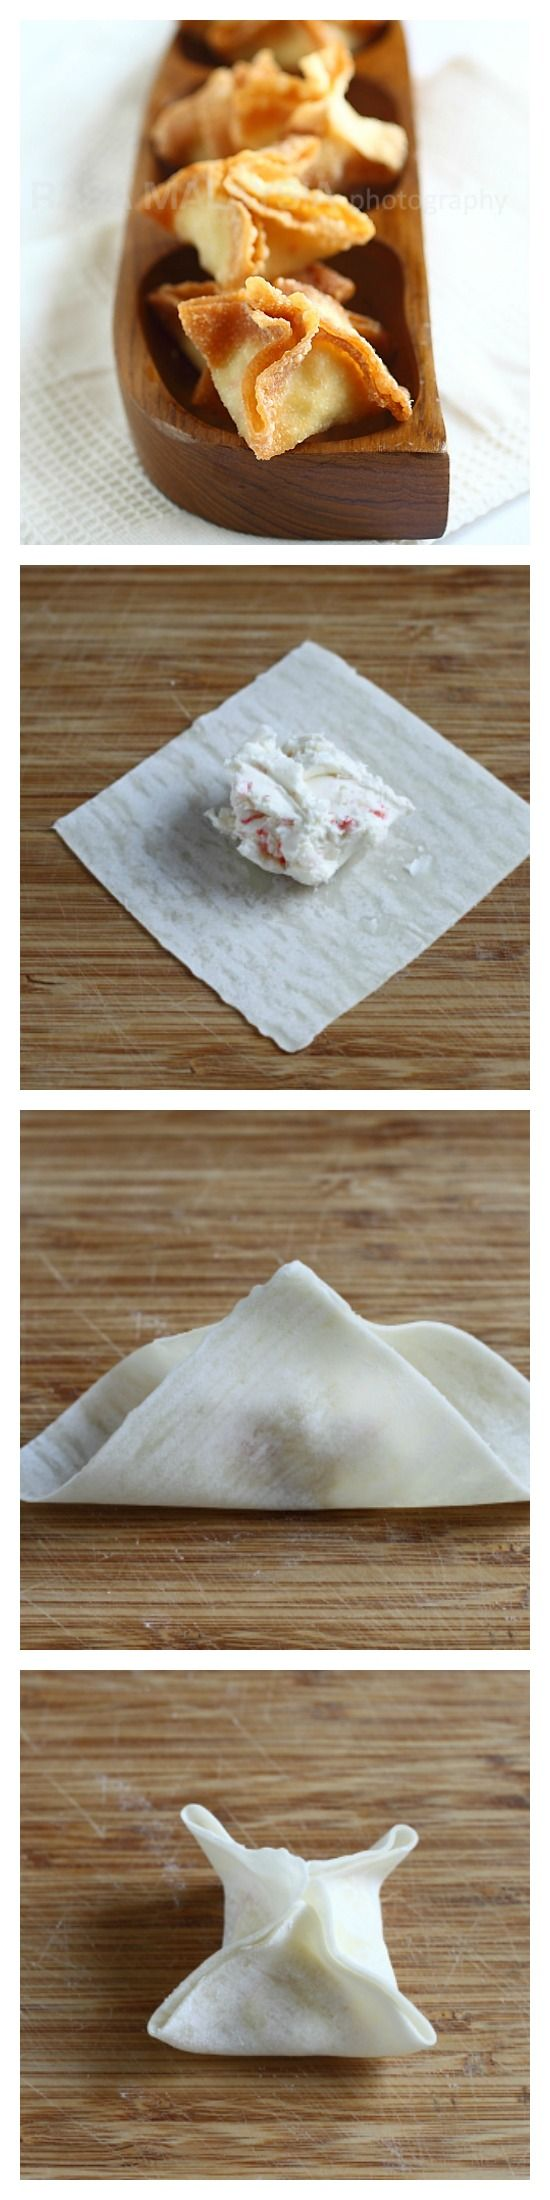 Crab Rangoon or fried cream cheese wontons with only 3 ingredients! Step-by-step recipe how to make this amazing appetizer at home. http://rasamalaysia.com